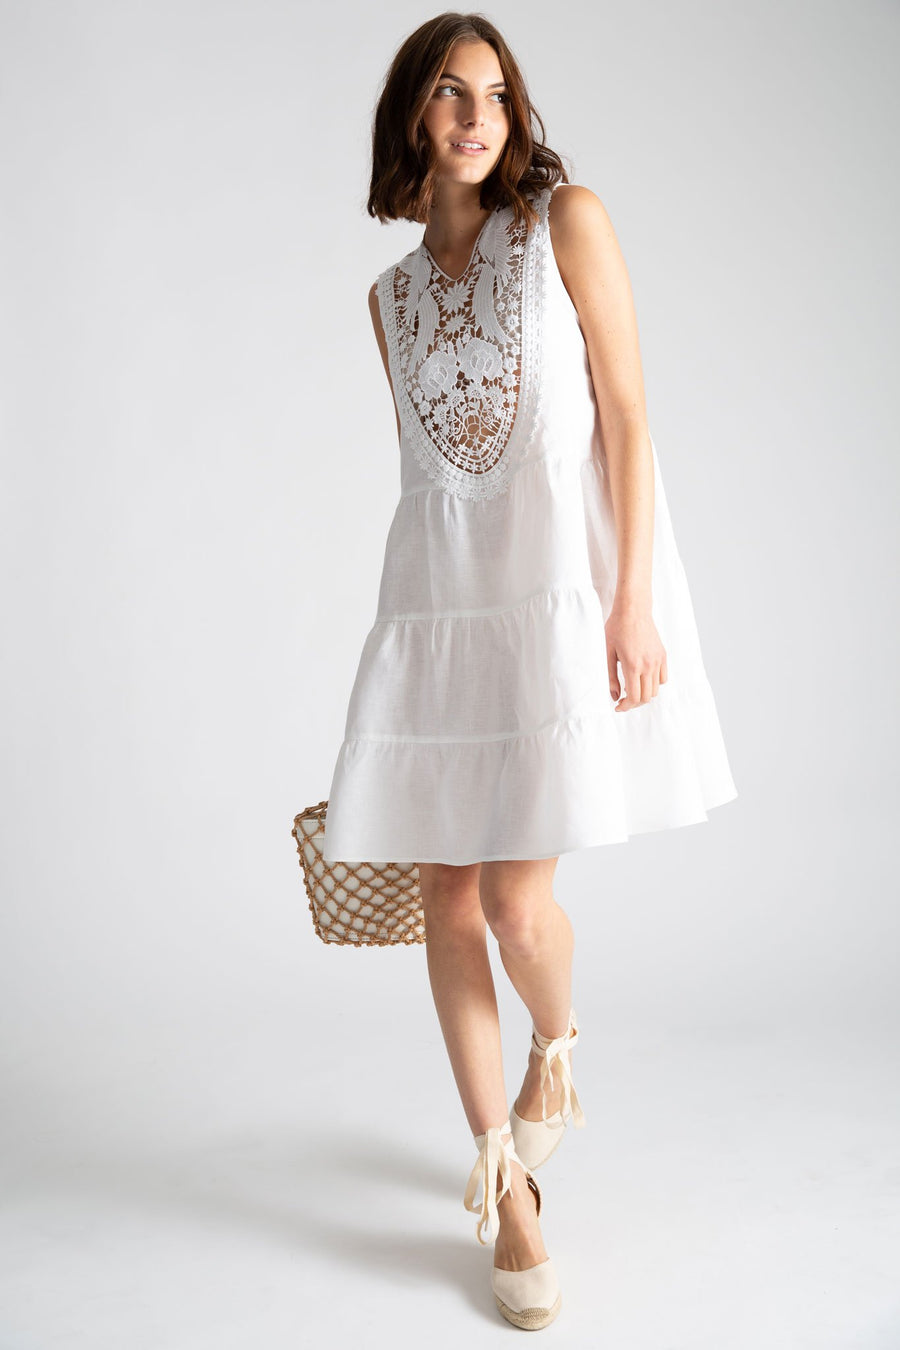 This is a photo of a woman wearing a white linen coverup dress that falls right about her knee and has 3 tiers. The front of the dress has a lace yolk that peeks through to her bikini top underneath. She is holding a white bag with natural netting over it and wearing natural colored espadrilles.